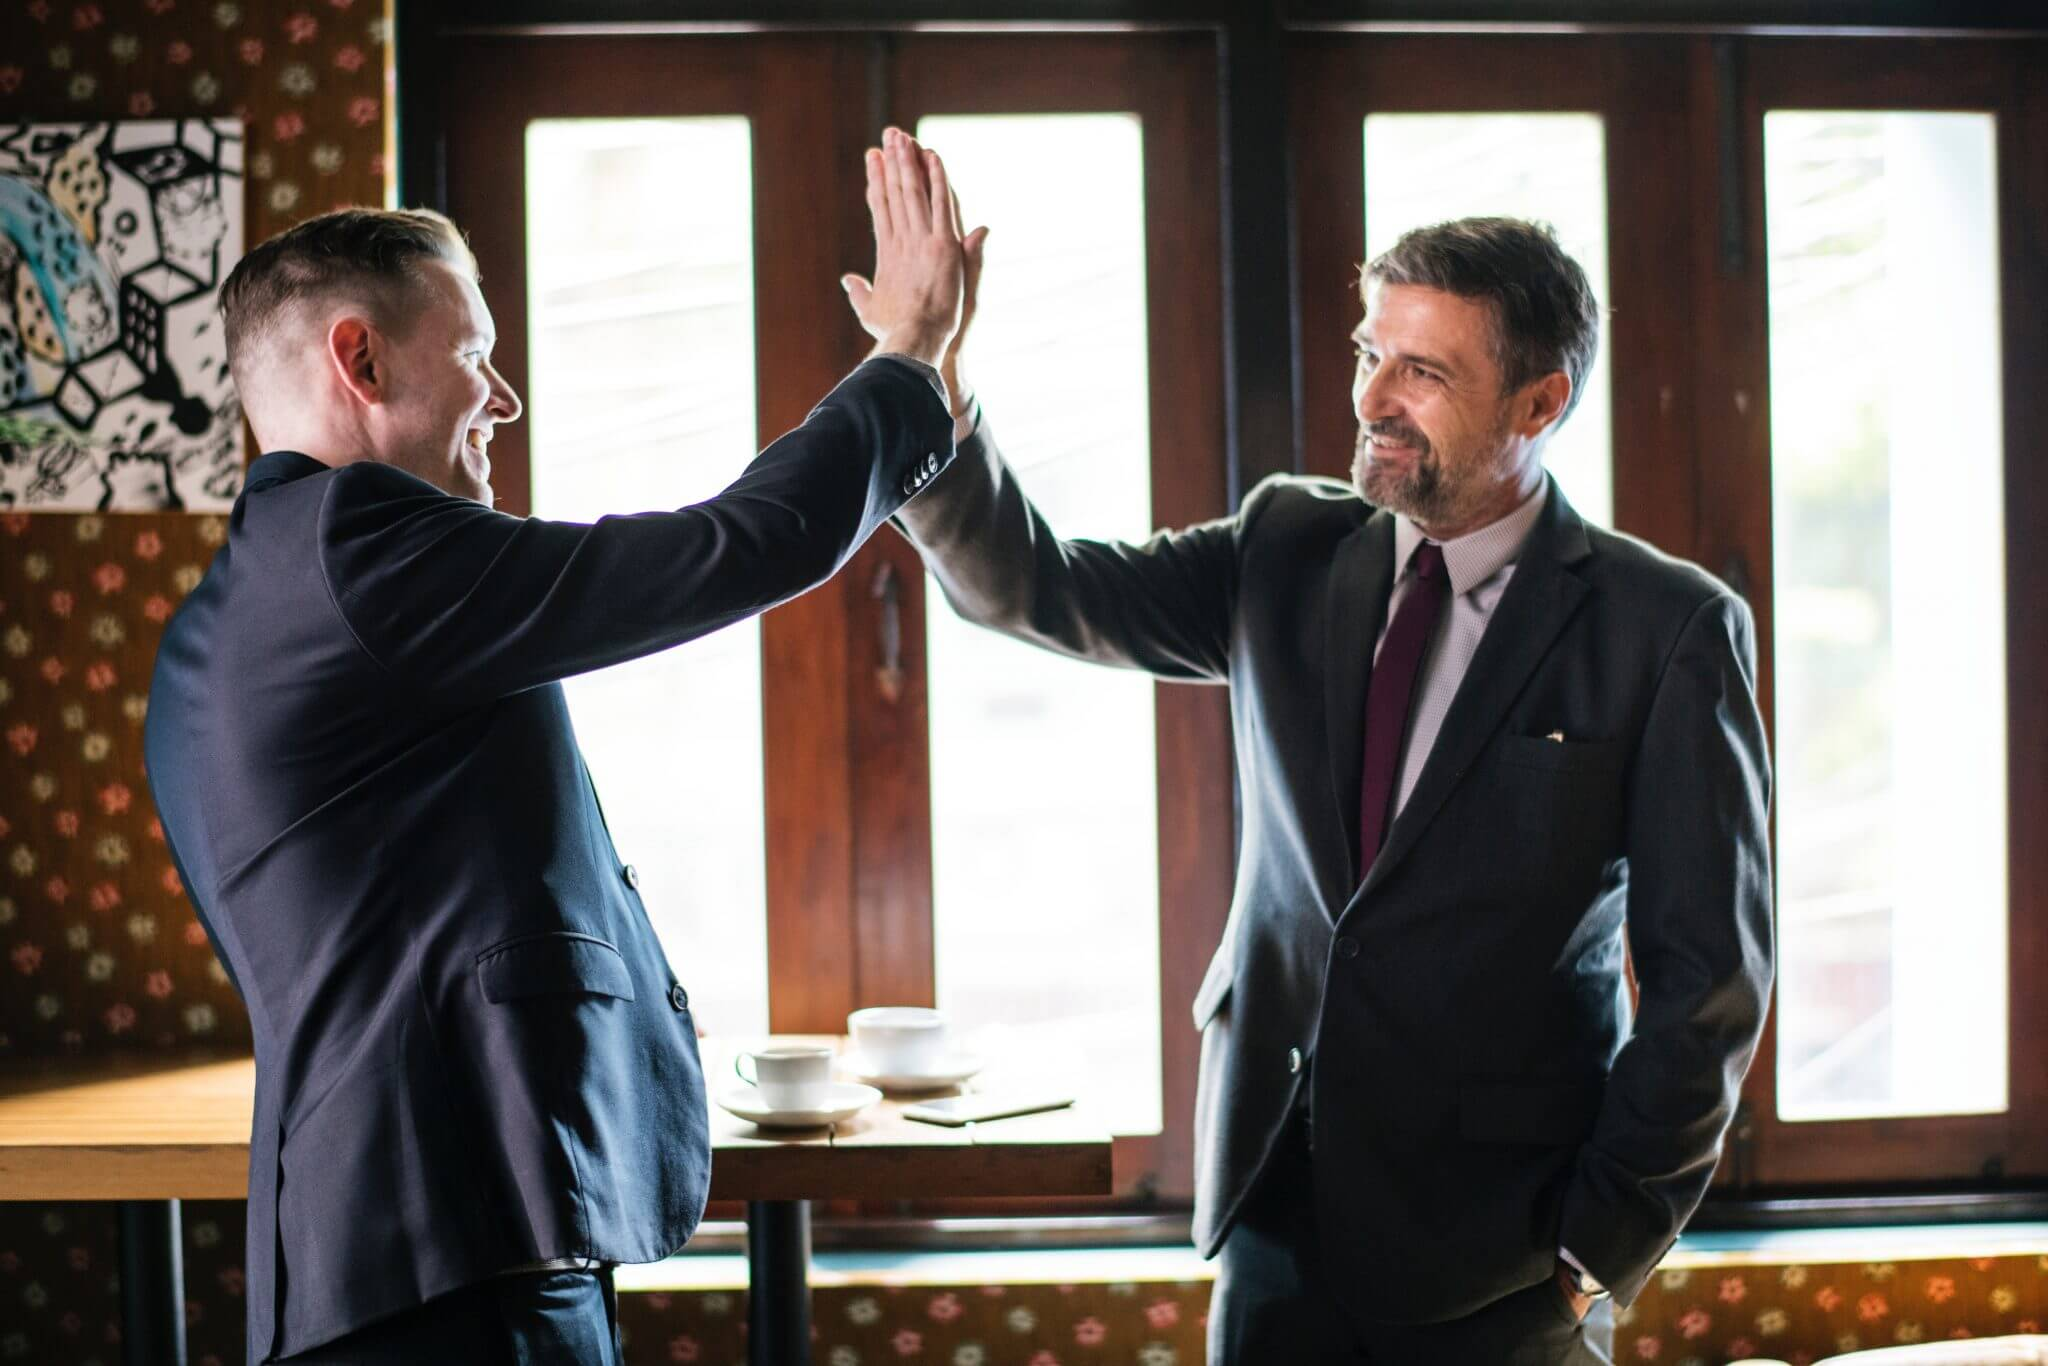 Two men in business suit attire high-fiving each other and smiling.